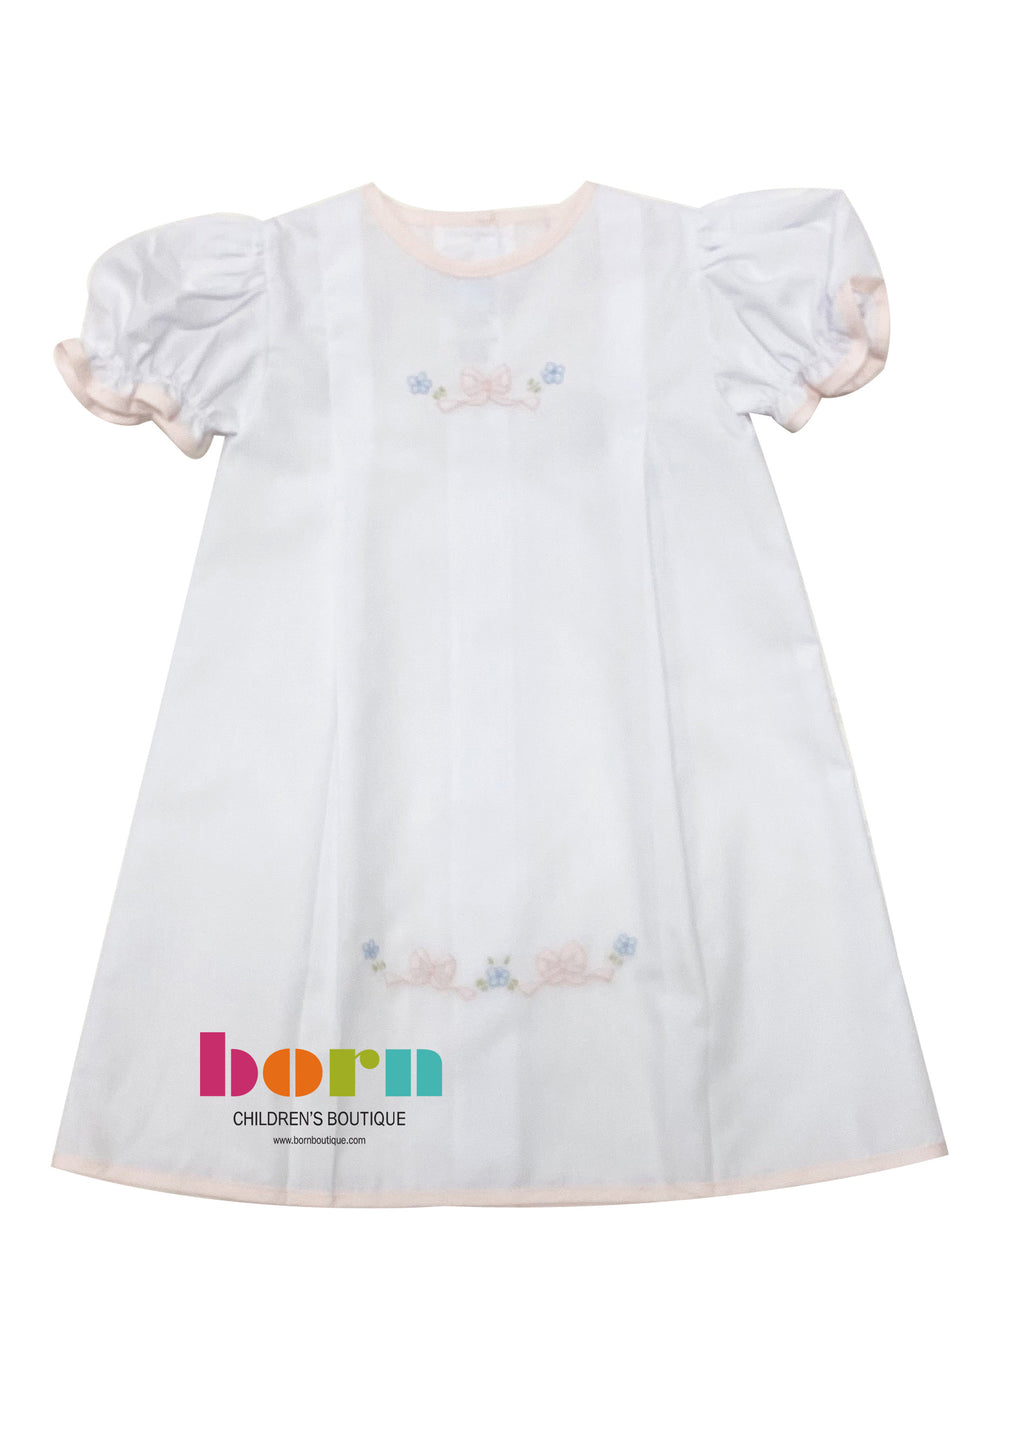 Auraluz Gown White with Pink Bow - Born Childrens Boutique